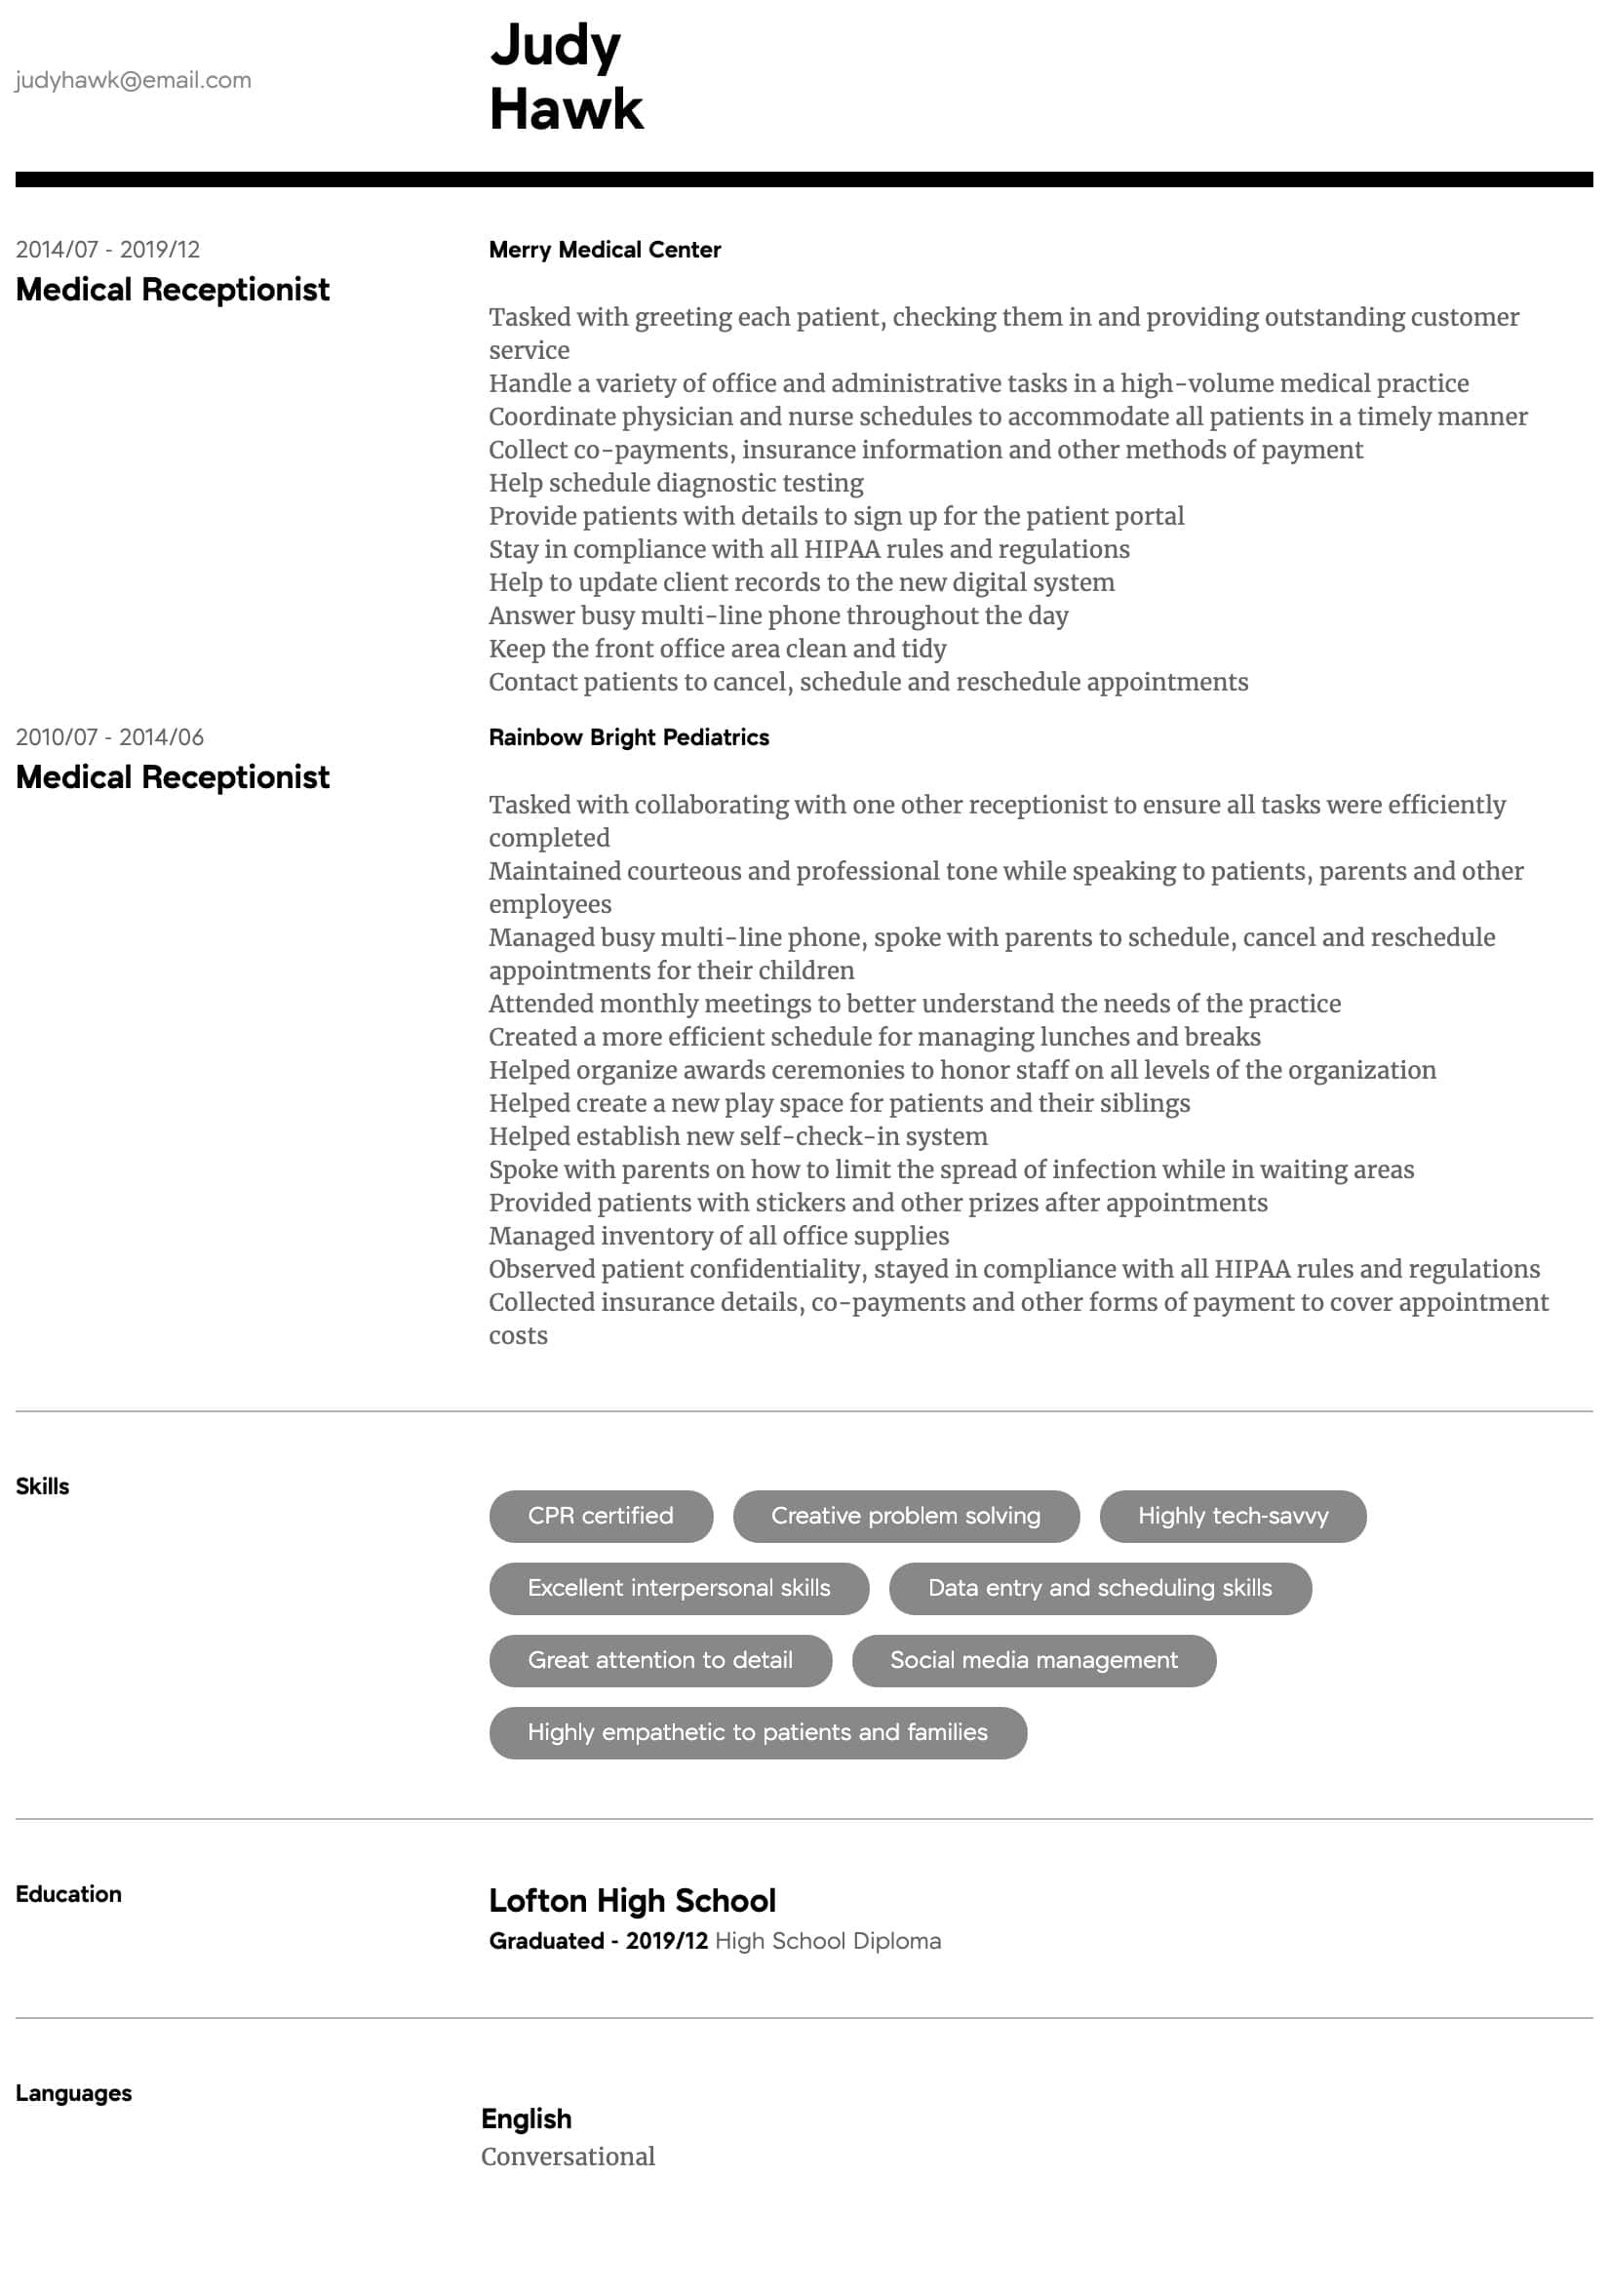 medical receptionist resume samples all experience levels entry level intermediate good Resume Entry Level Receptionist Resume